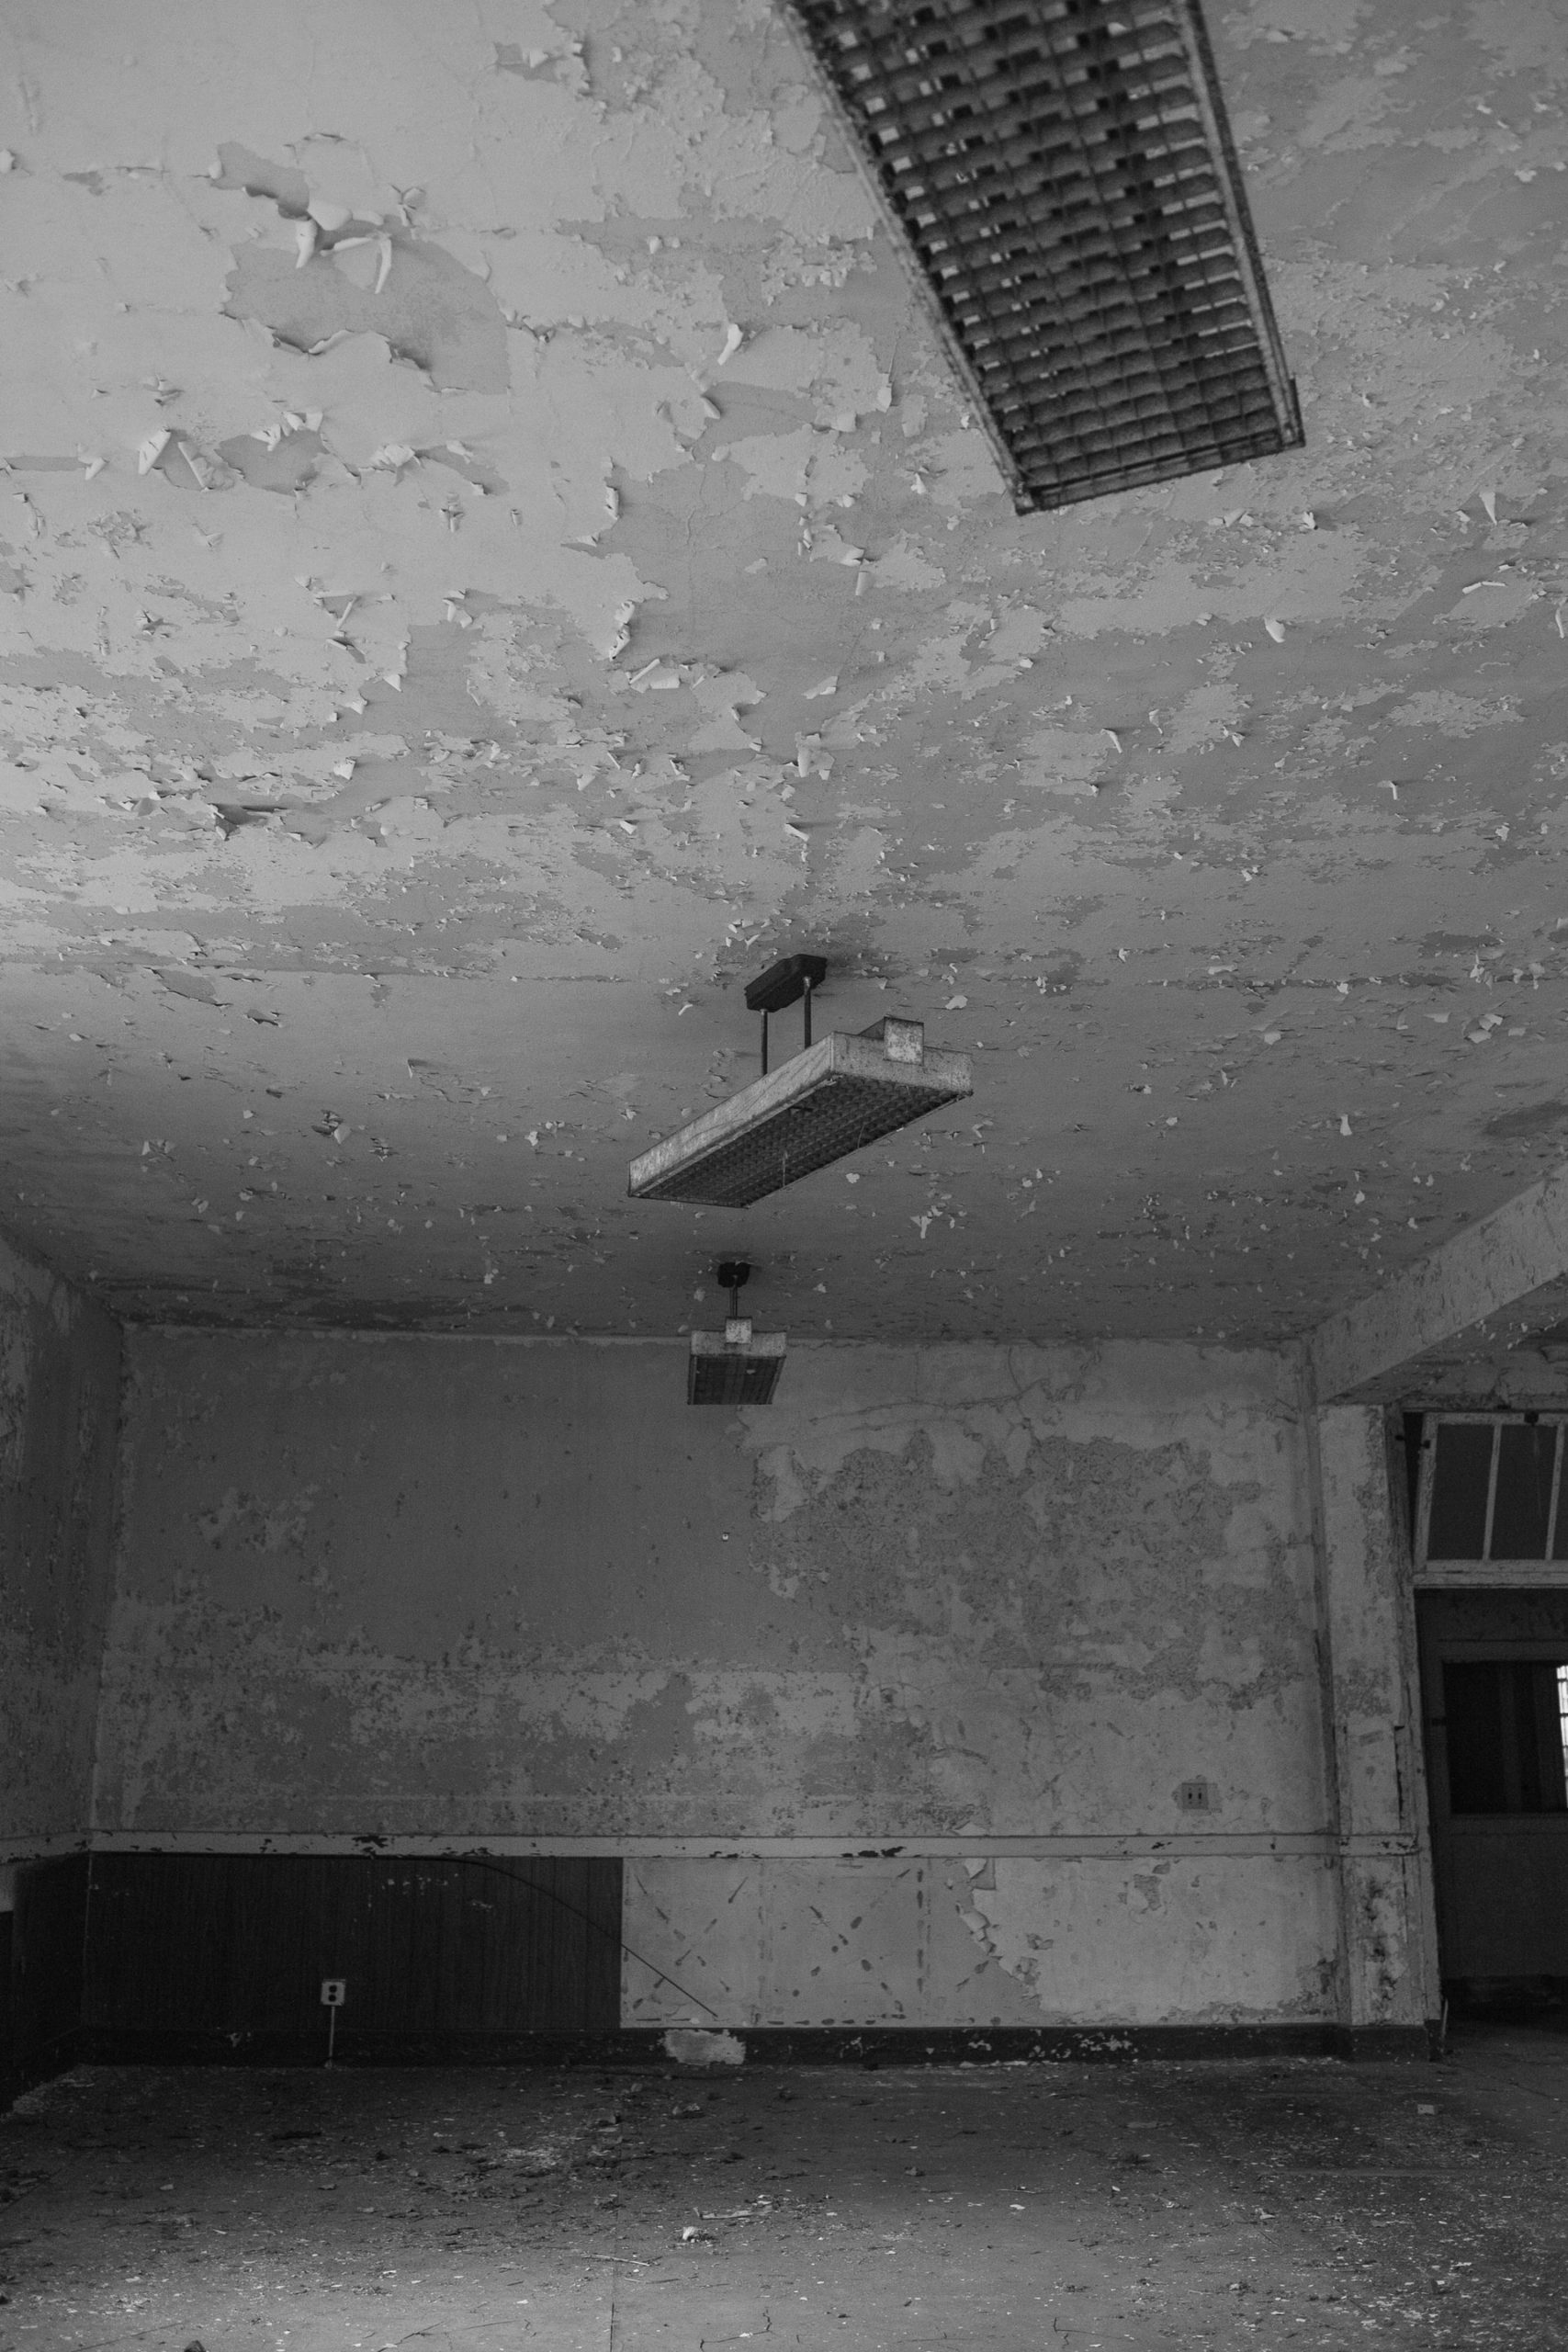 Commercial Mold Remediation Article Image